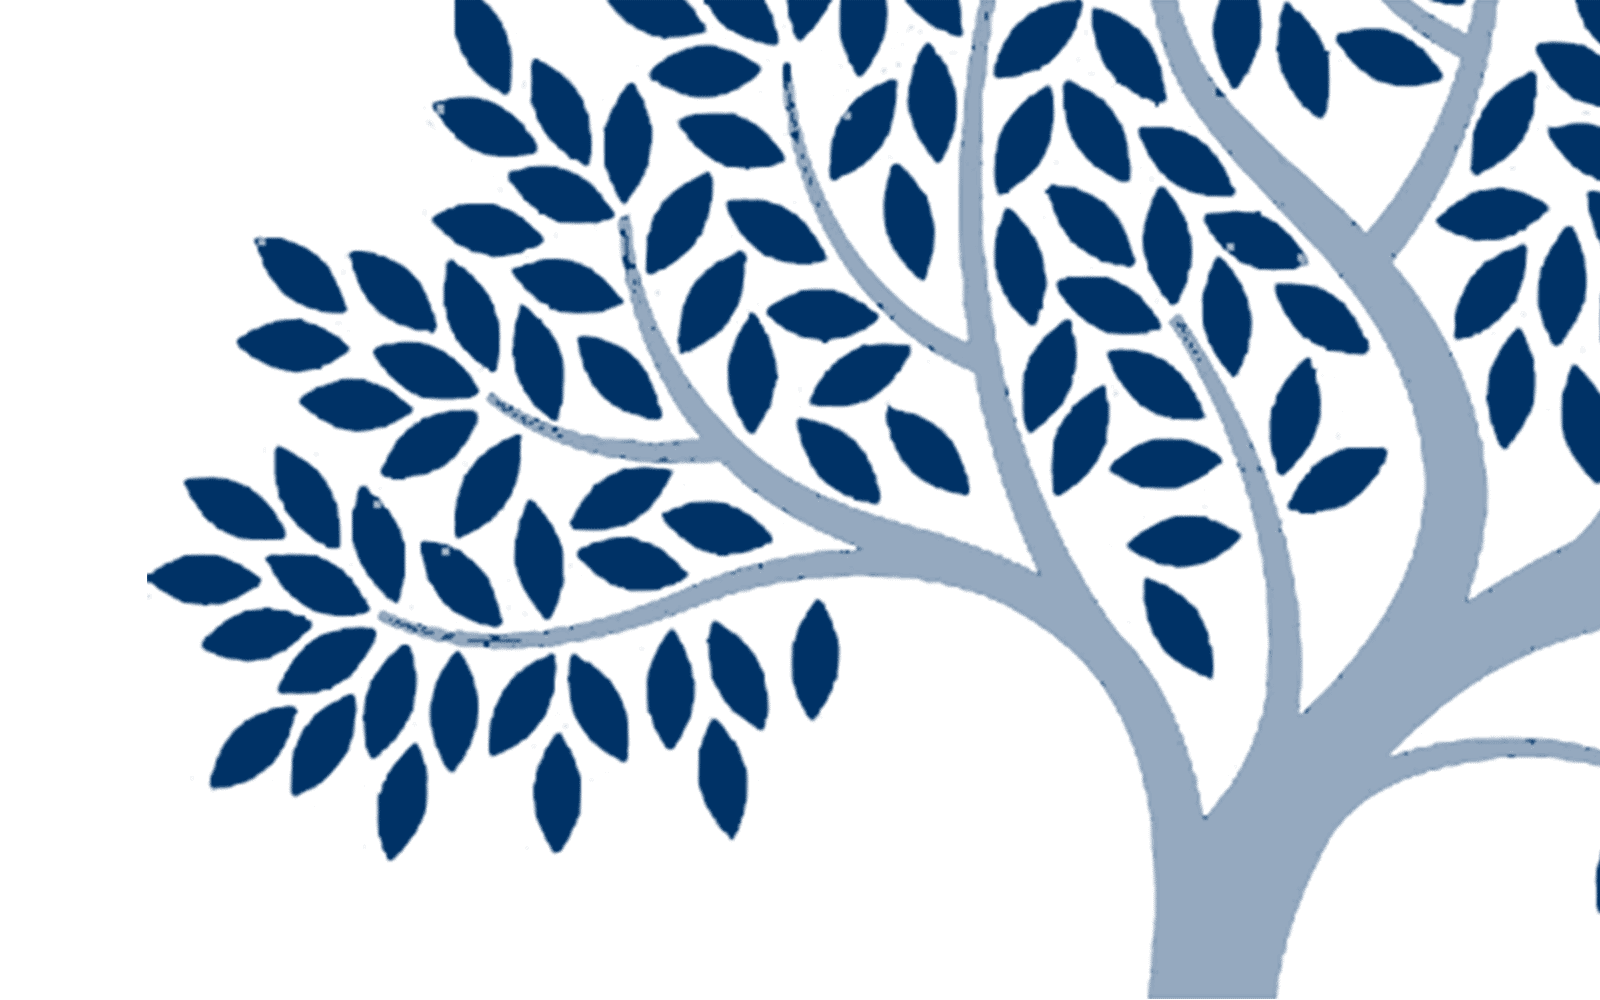 Dark blue tree with leaves